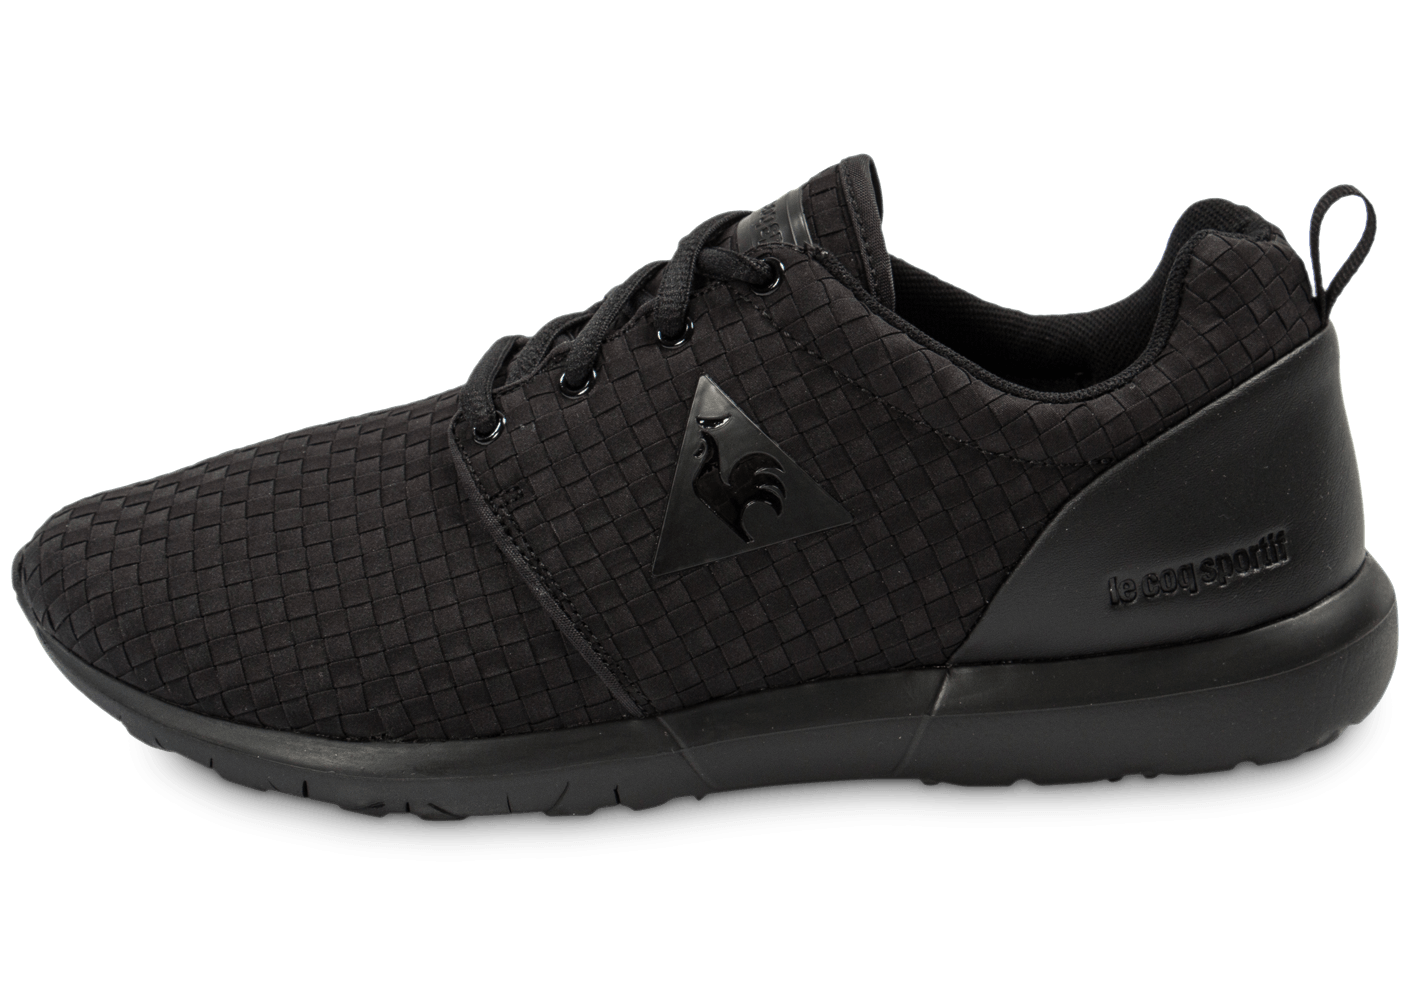 Chaussure Coq Sportif Homme